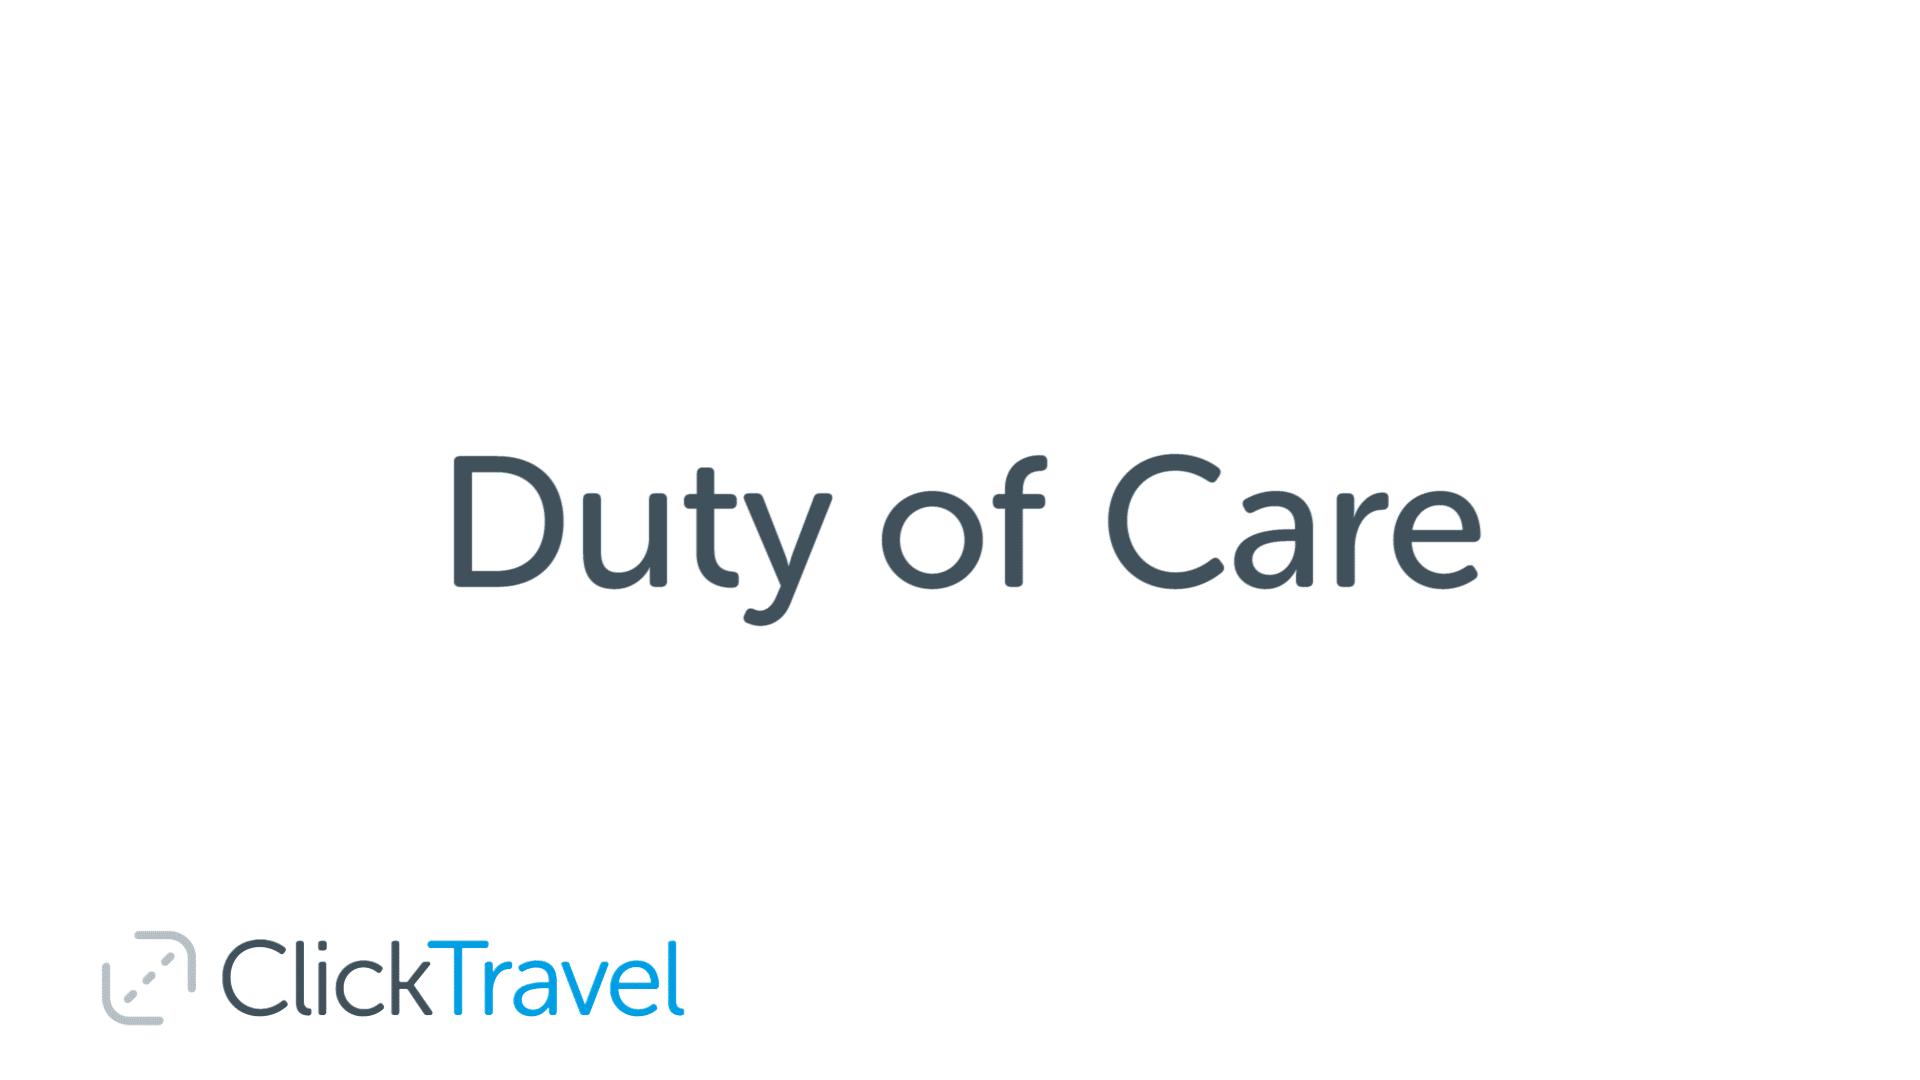 [VIDEO] What does duty of care mean and why is it important?